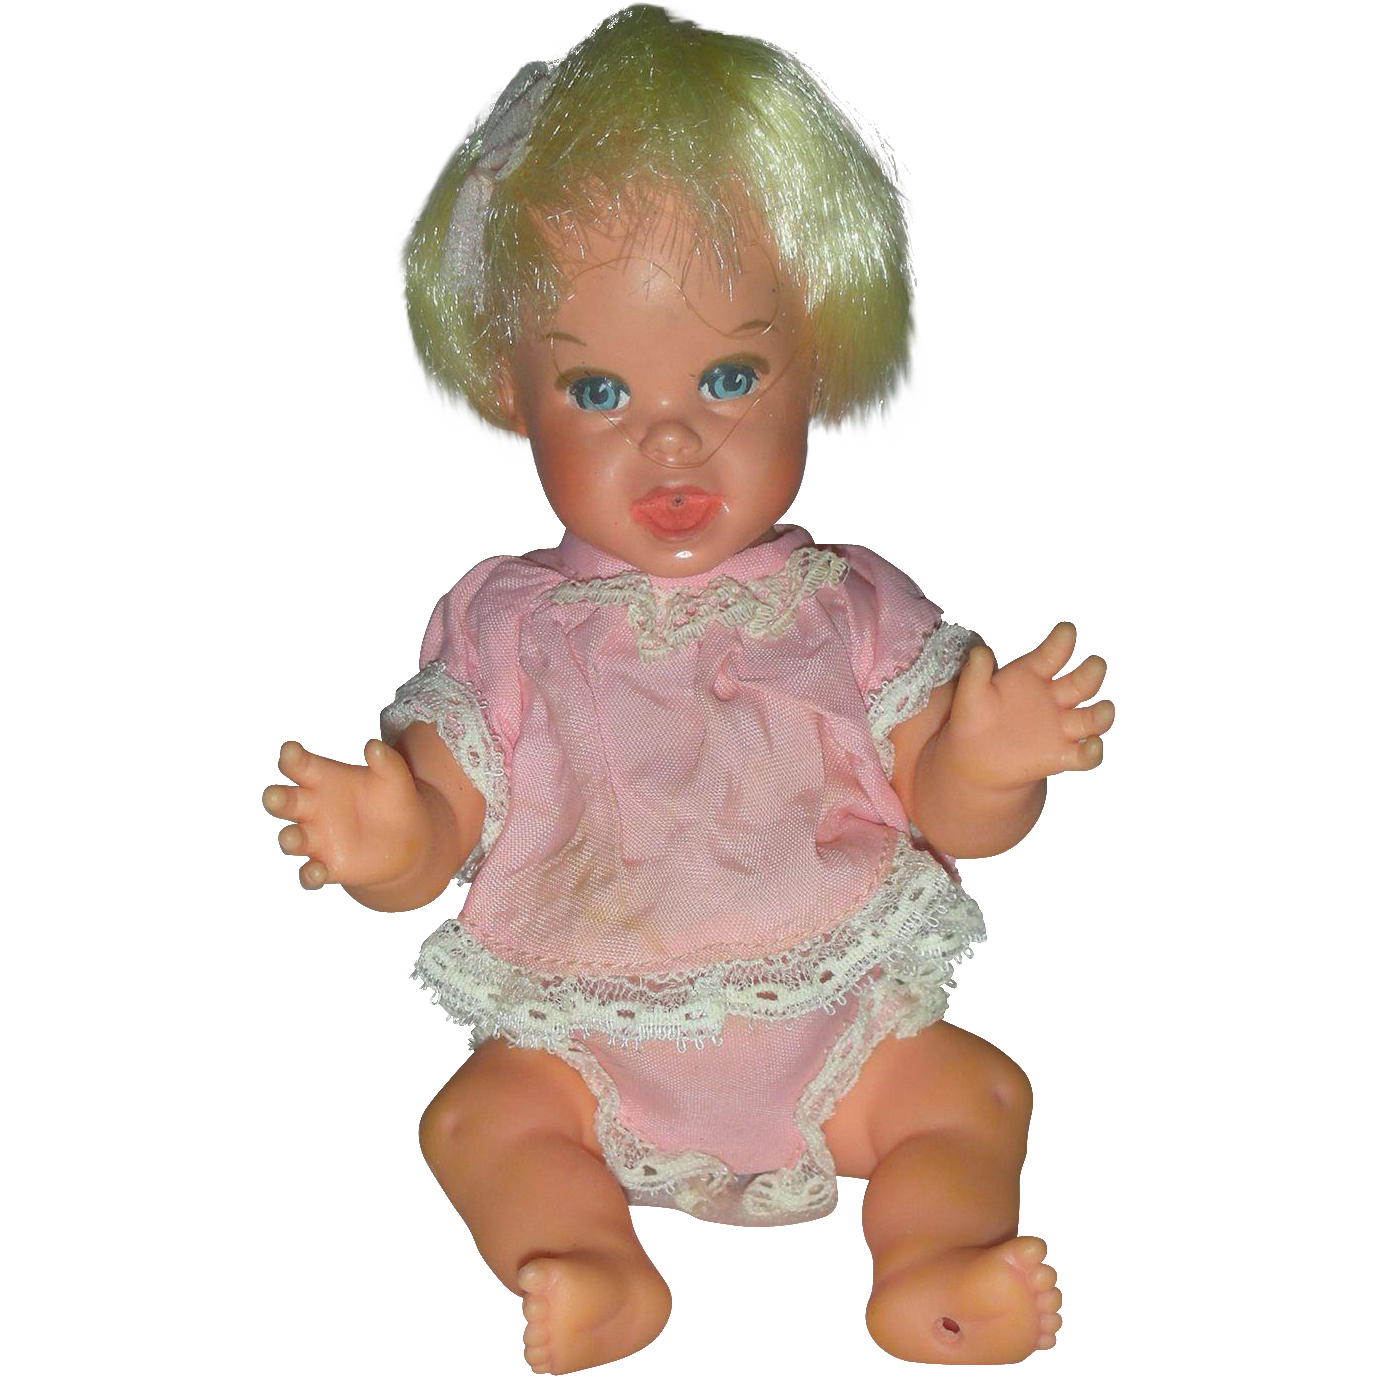 Vintage Mattel 7 inch Cheerful Tearful Baby Doll 1960s